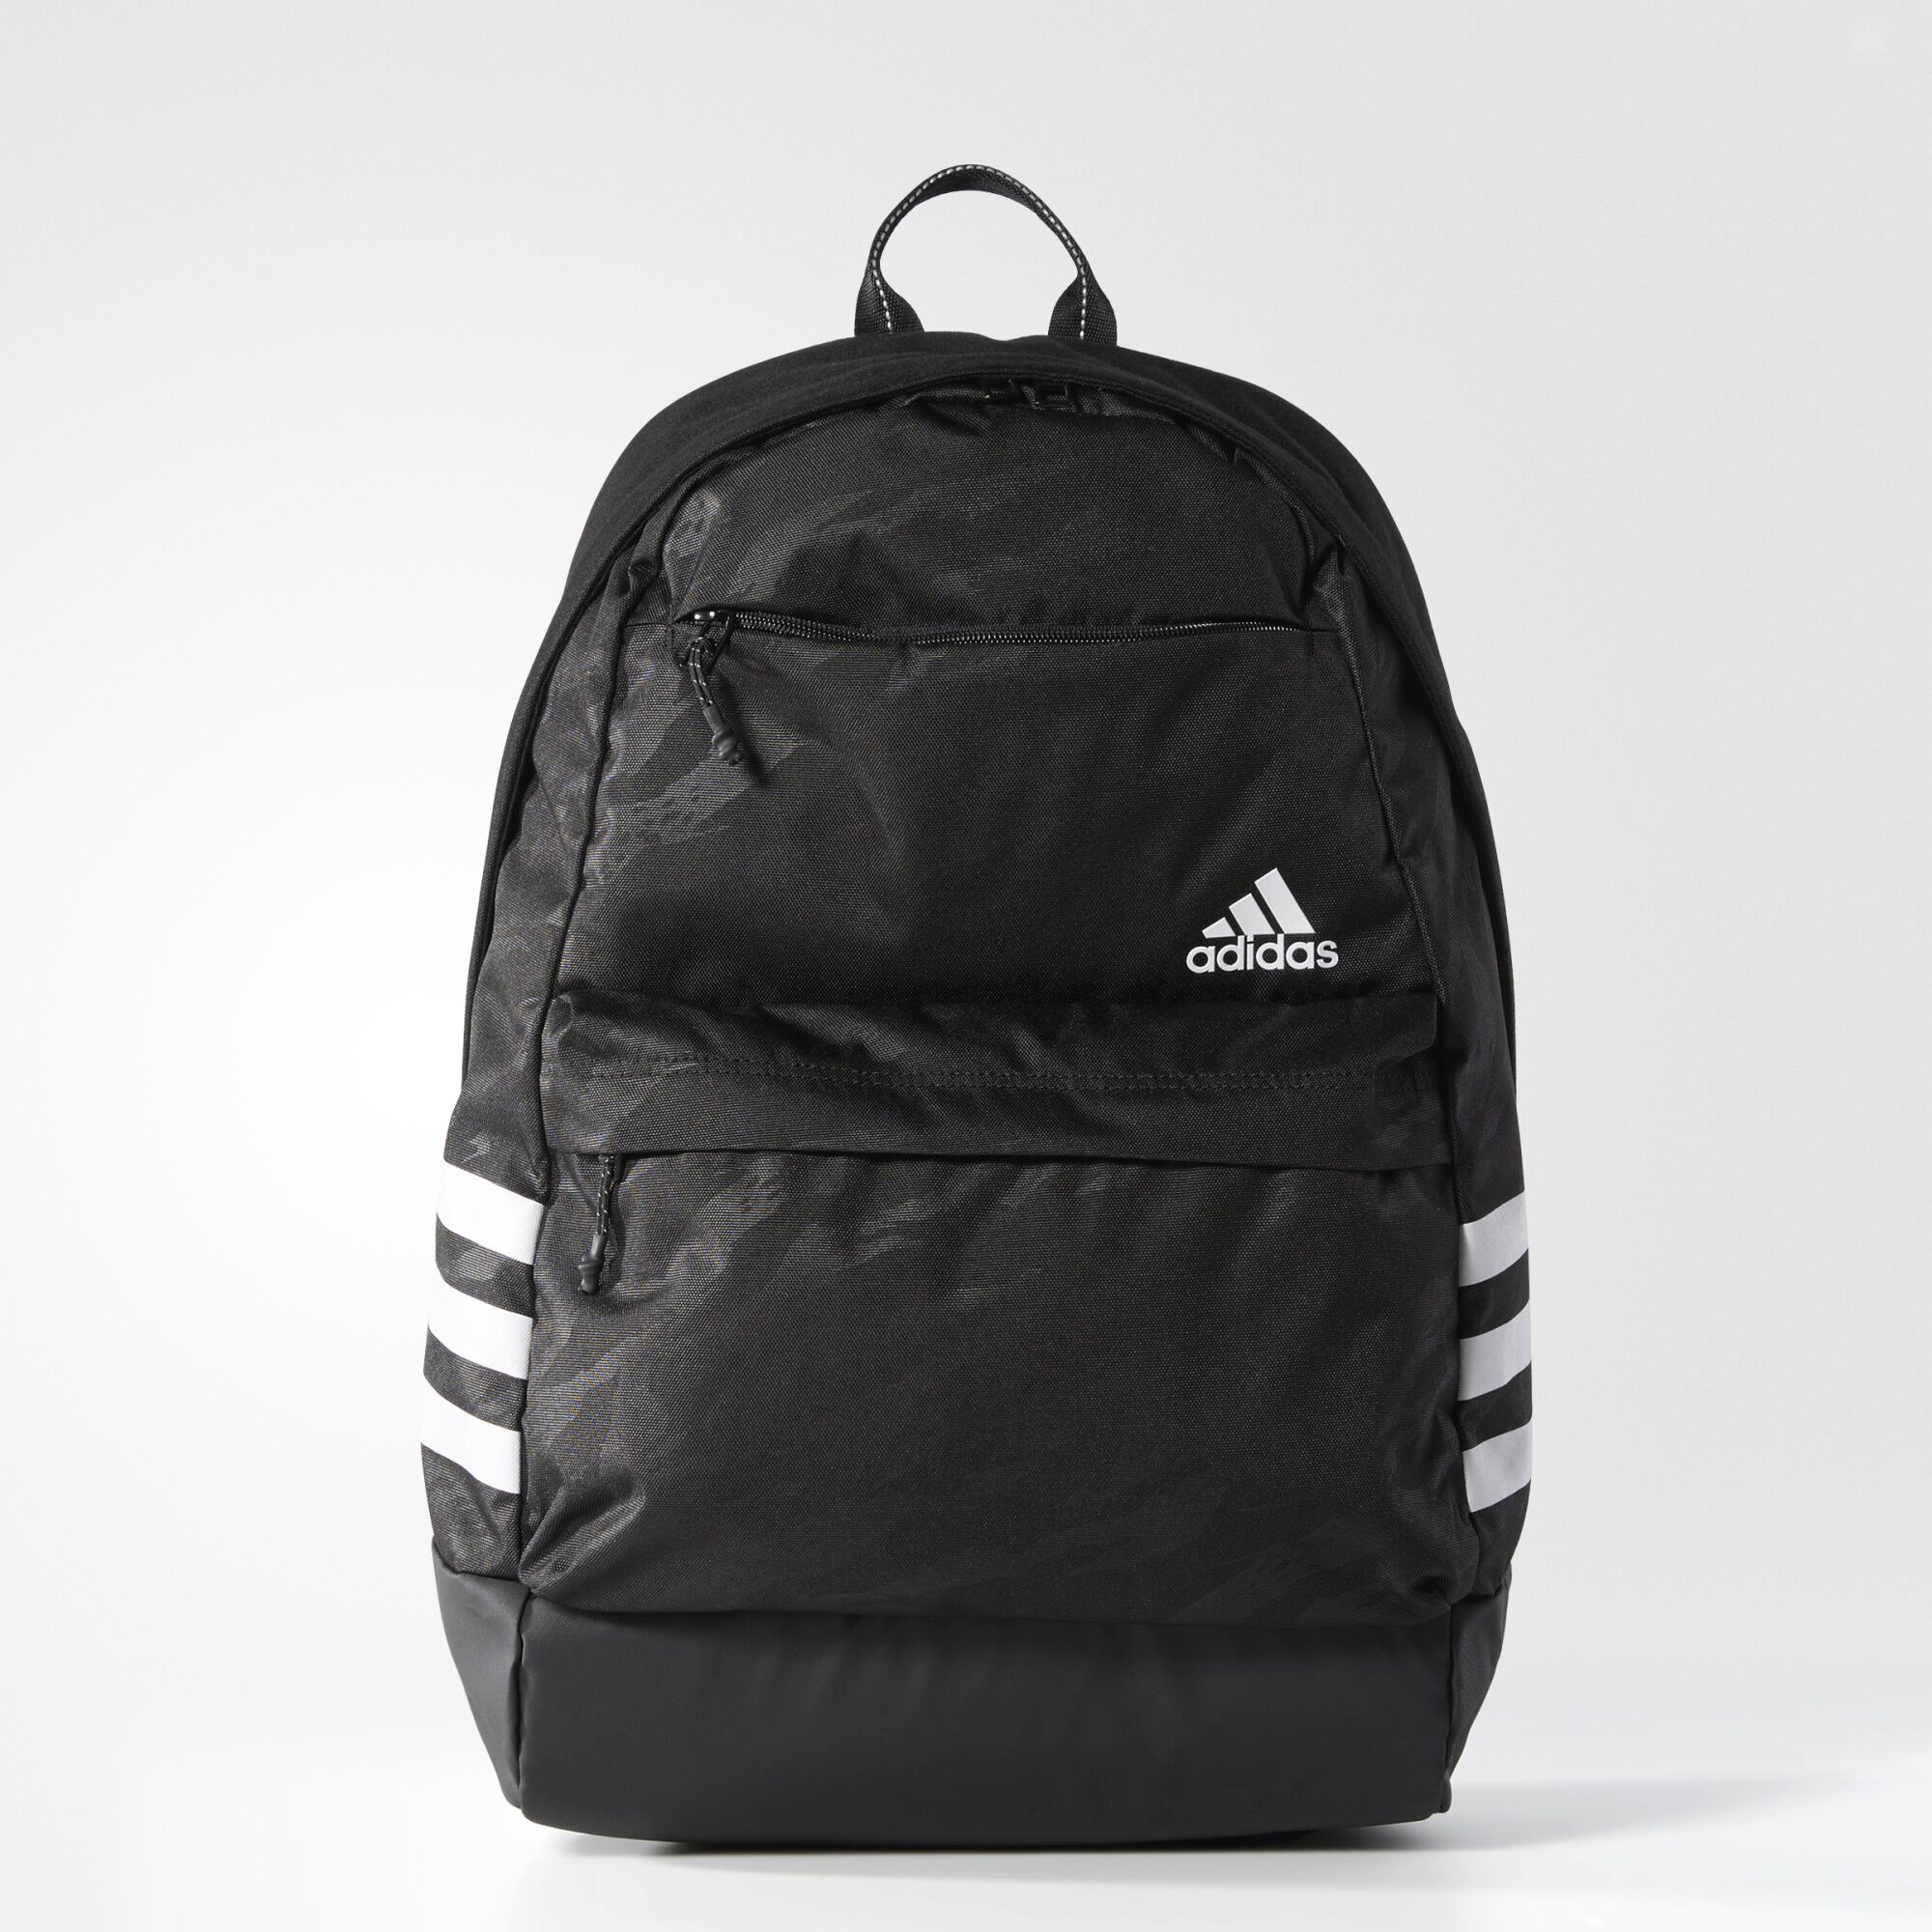 cdebd57d95d2 ... Bag with GoldHardware  adidas - Daybreak Backpack Black CI0276 .